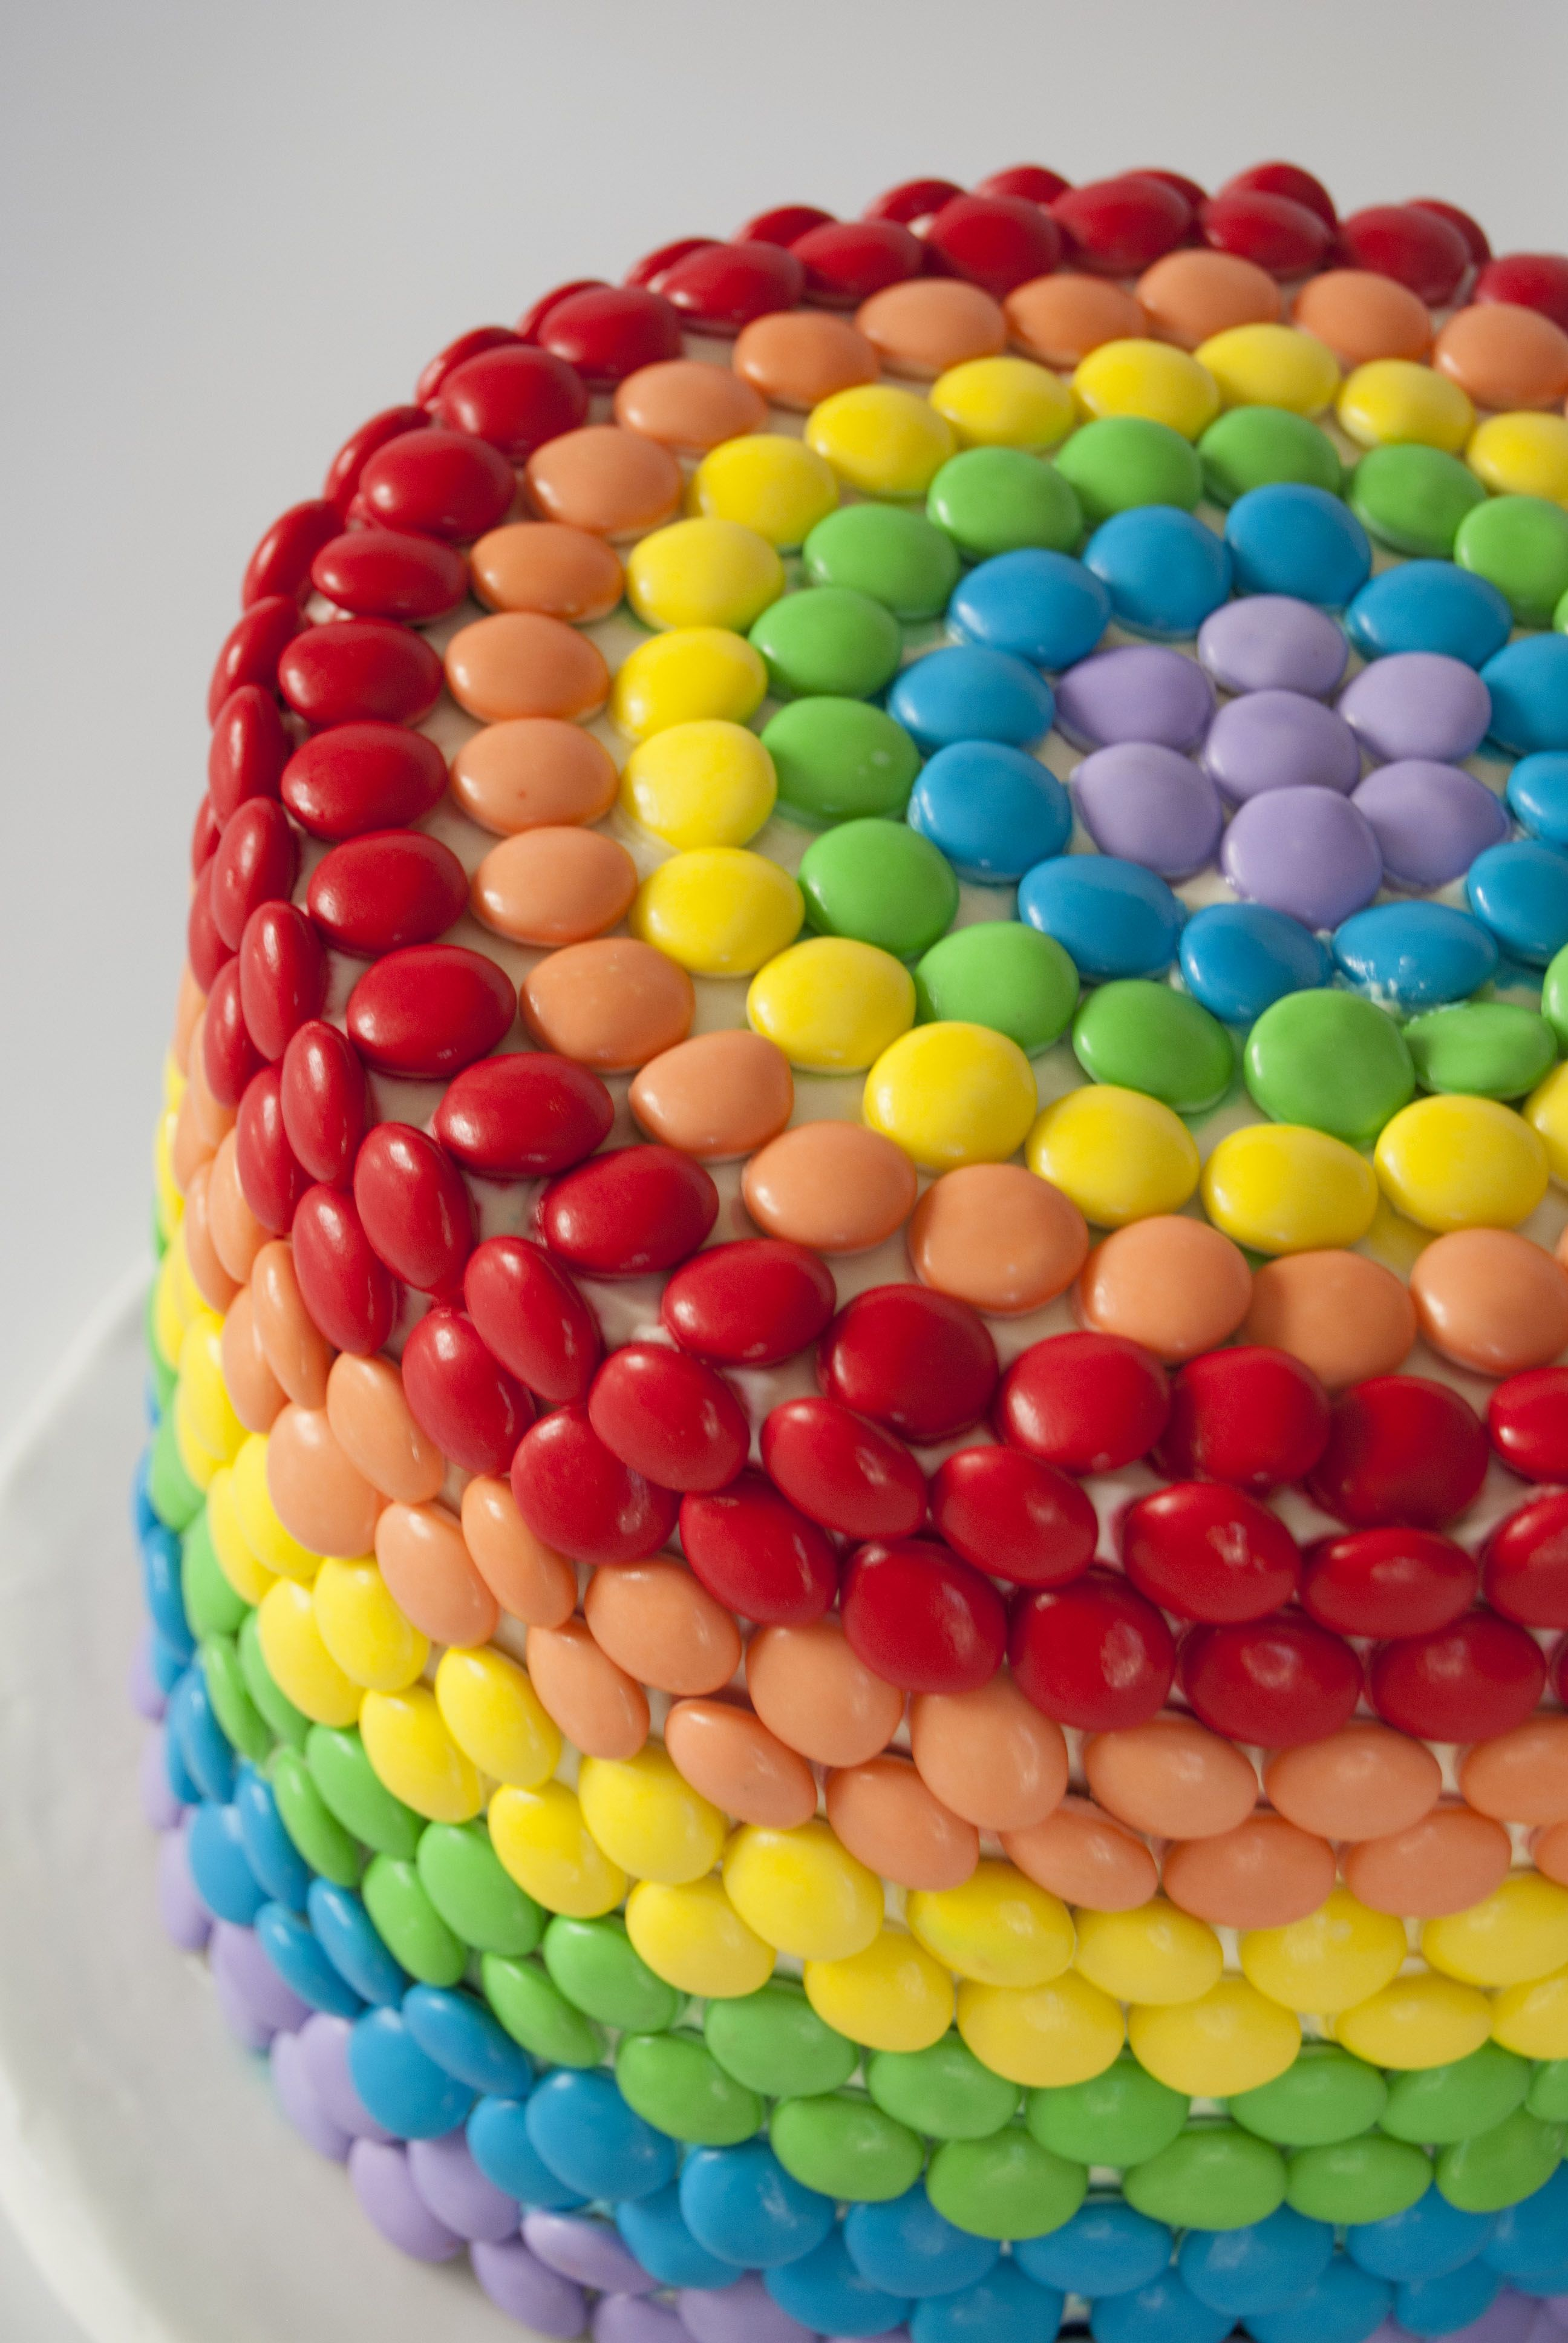 Cake made of m and m's.Fun way to experiment and learn about colour + you get to feed the kids at the same time!!! Could try much more complex combinations than this